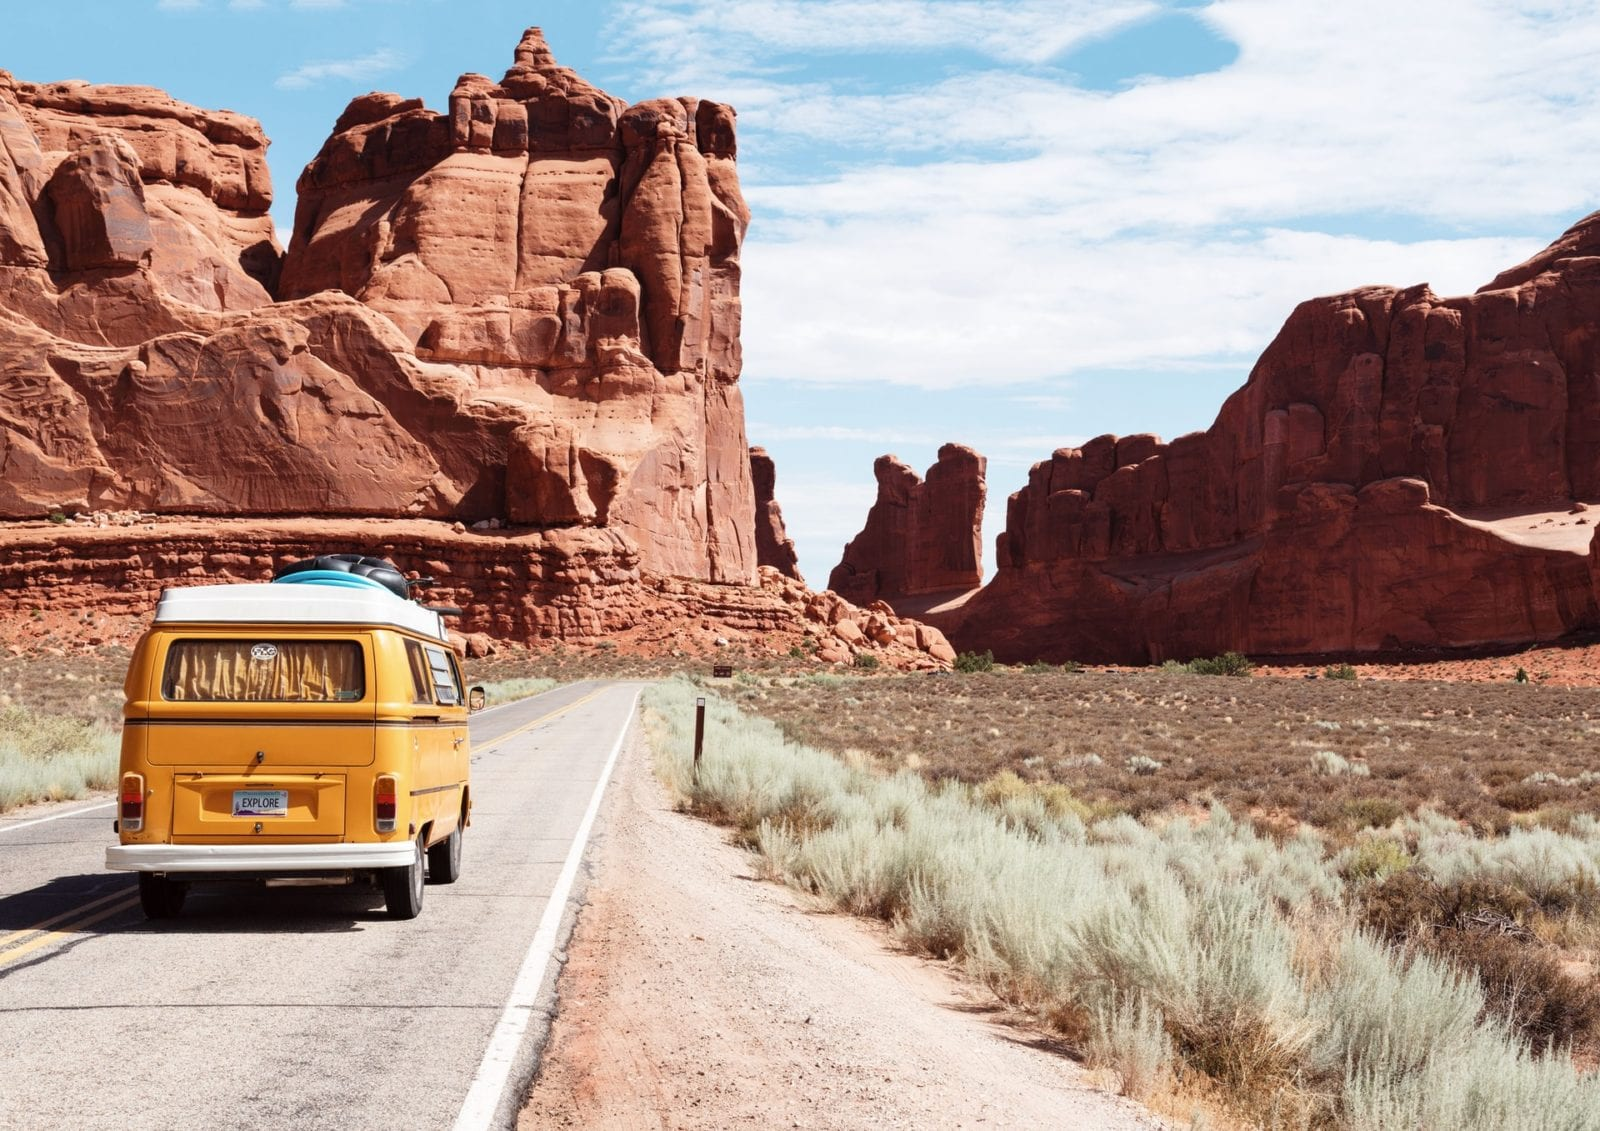 Volkswagon bus at Arches National Park